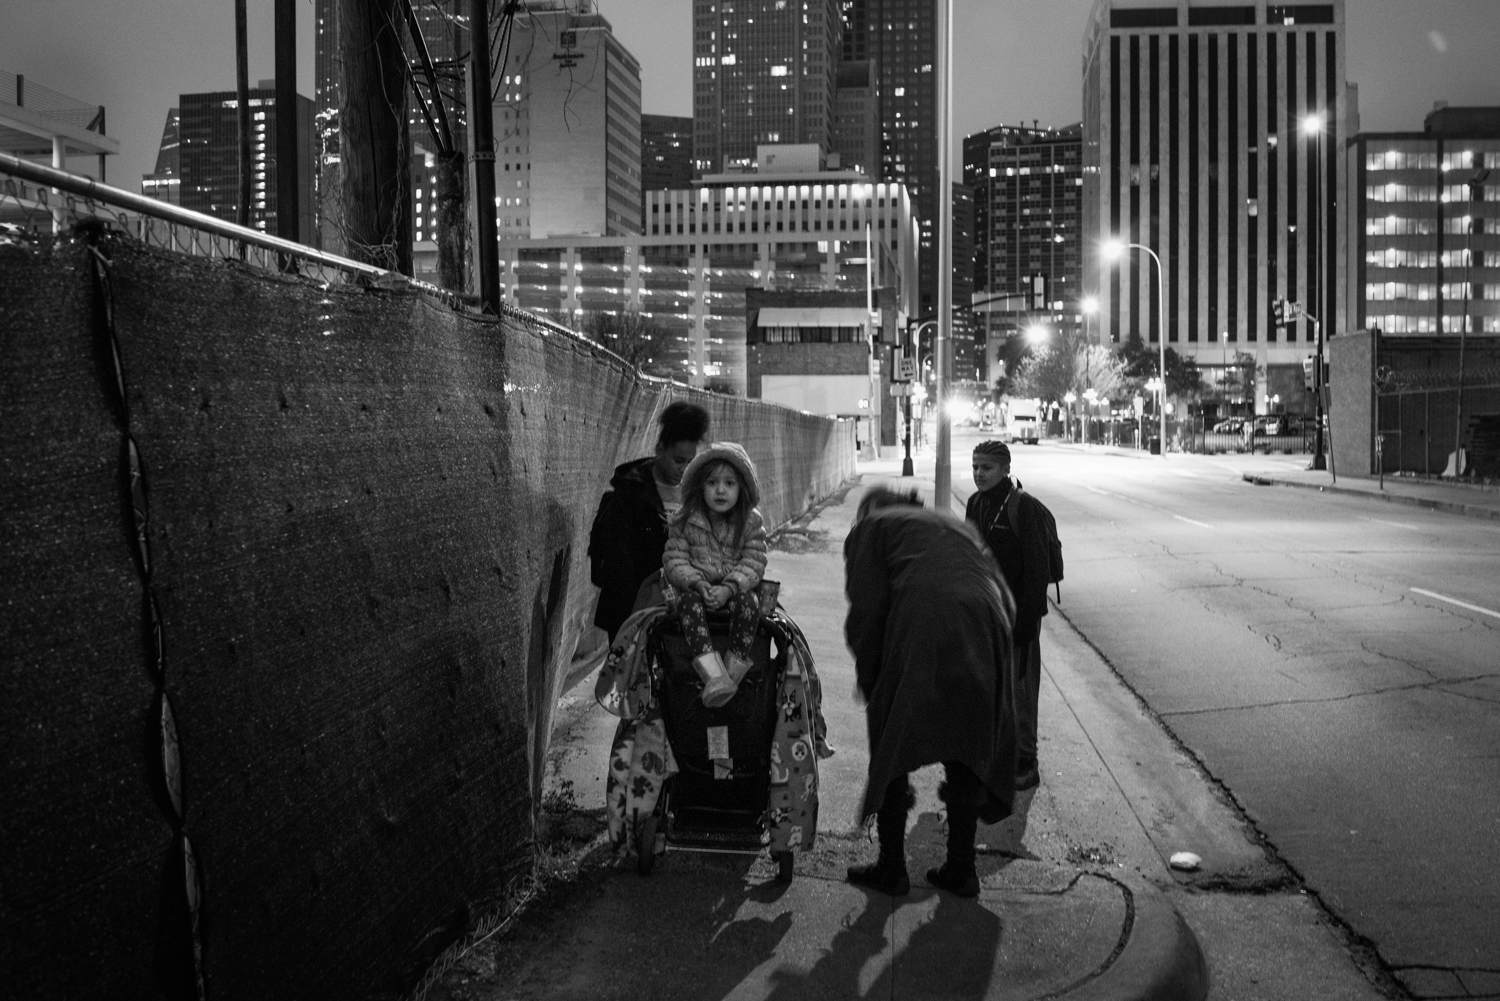 An ongoing project documenting children in Dallas, U.S.A. who are currently homeless and also either attending or attempting to attend school. Covers families living in vehicles, emergency shelters, or on the streets.